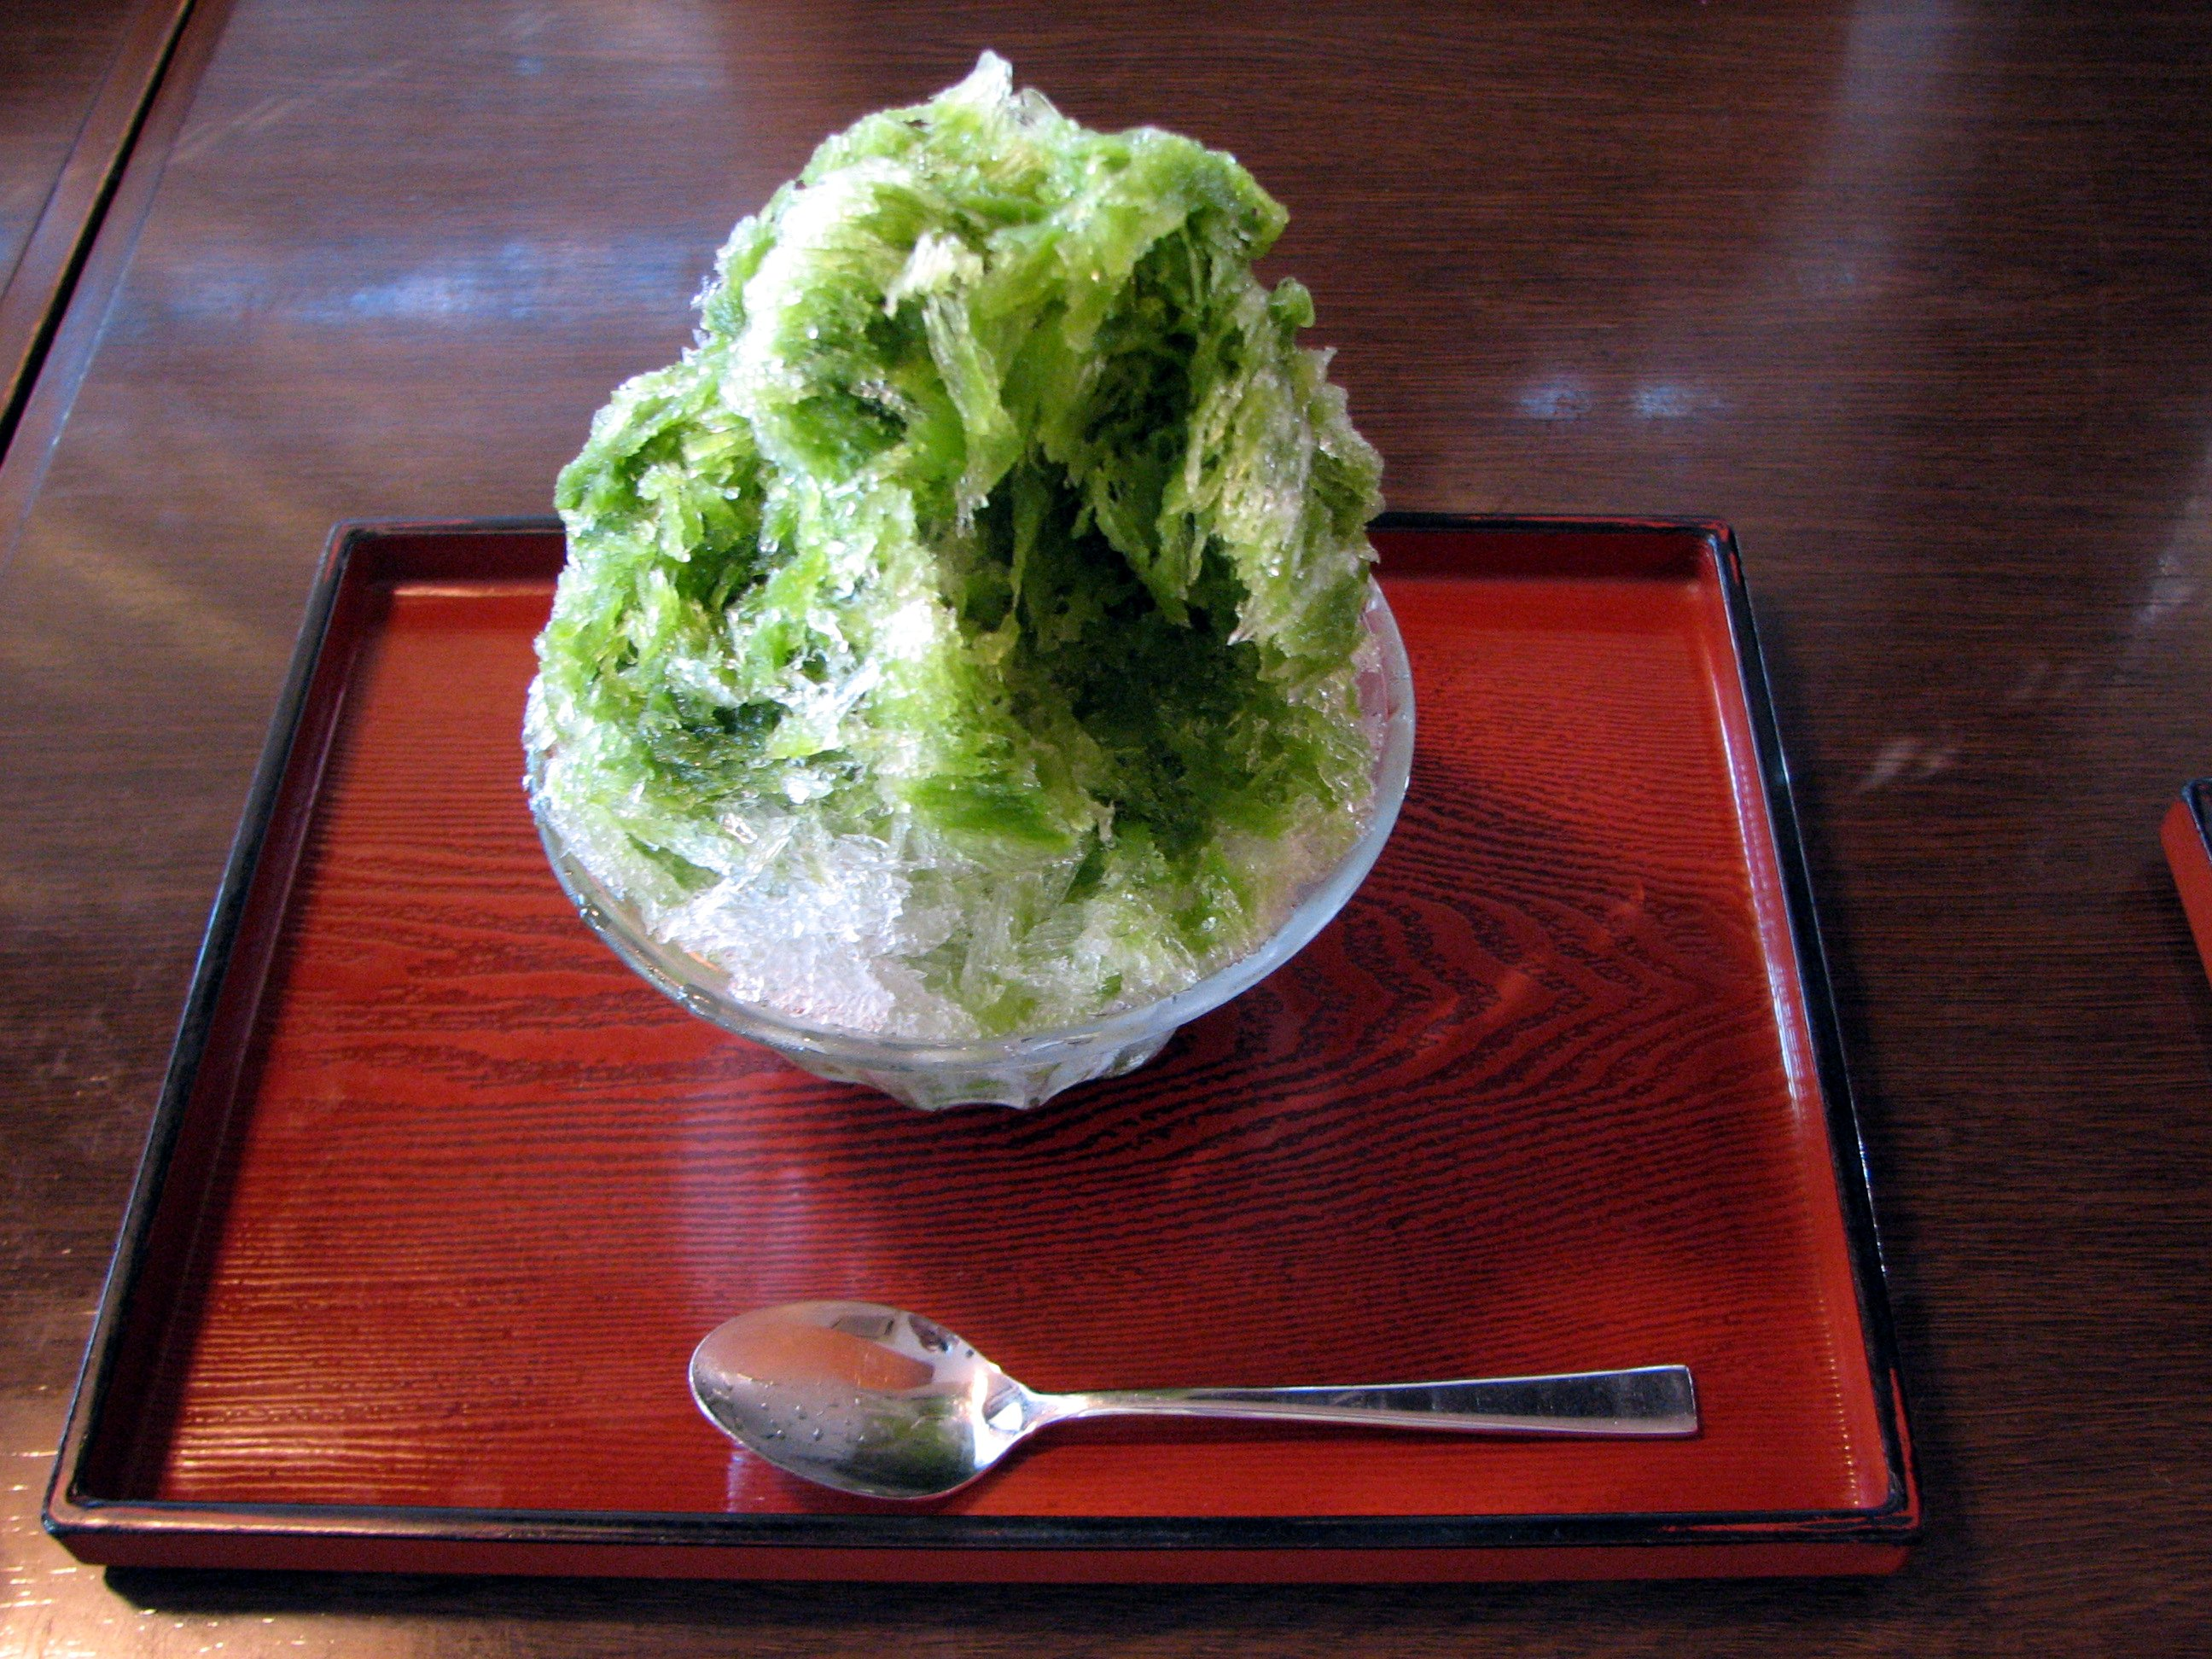 http://upload.wikimedia.org/wikipedia/commons/a/a1/Macha_kakigori_snow_cone.jpg